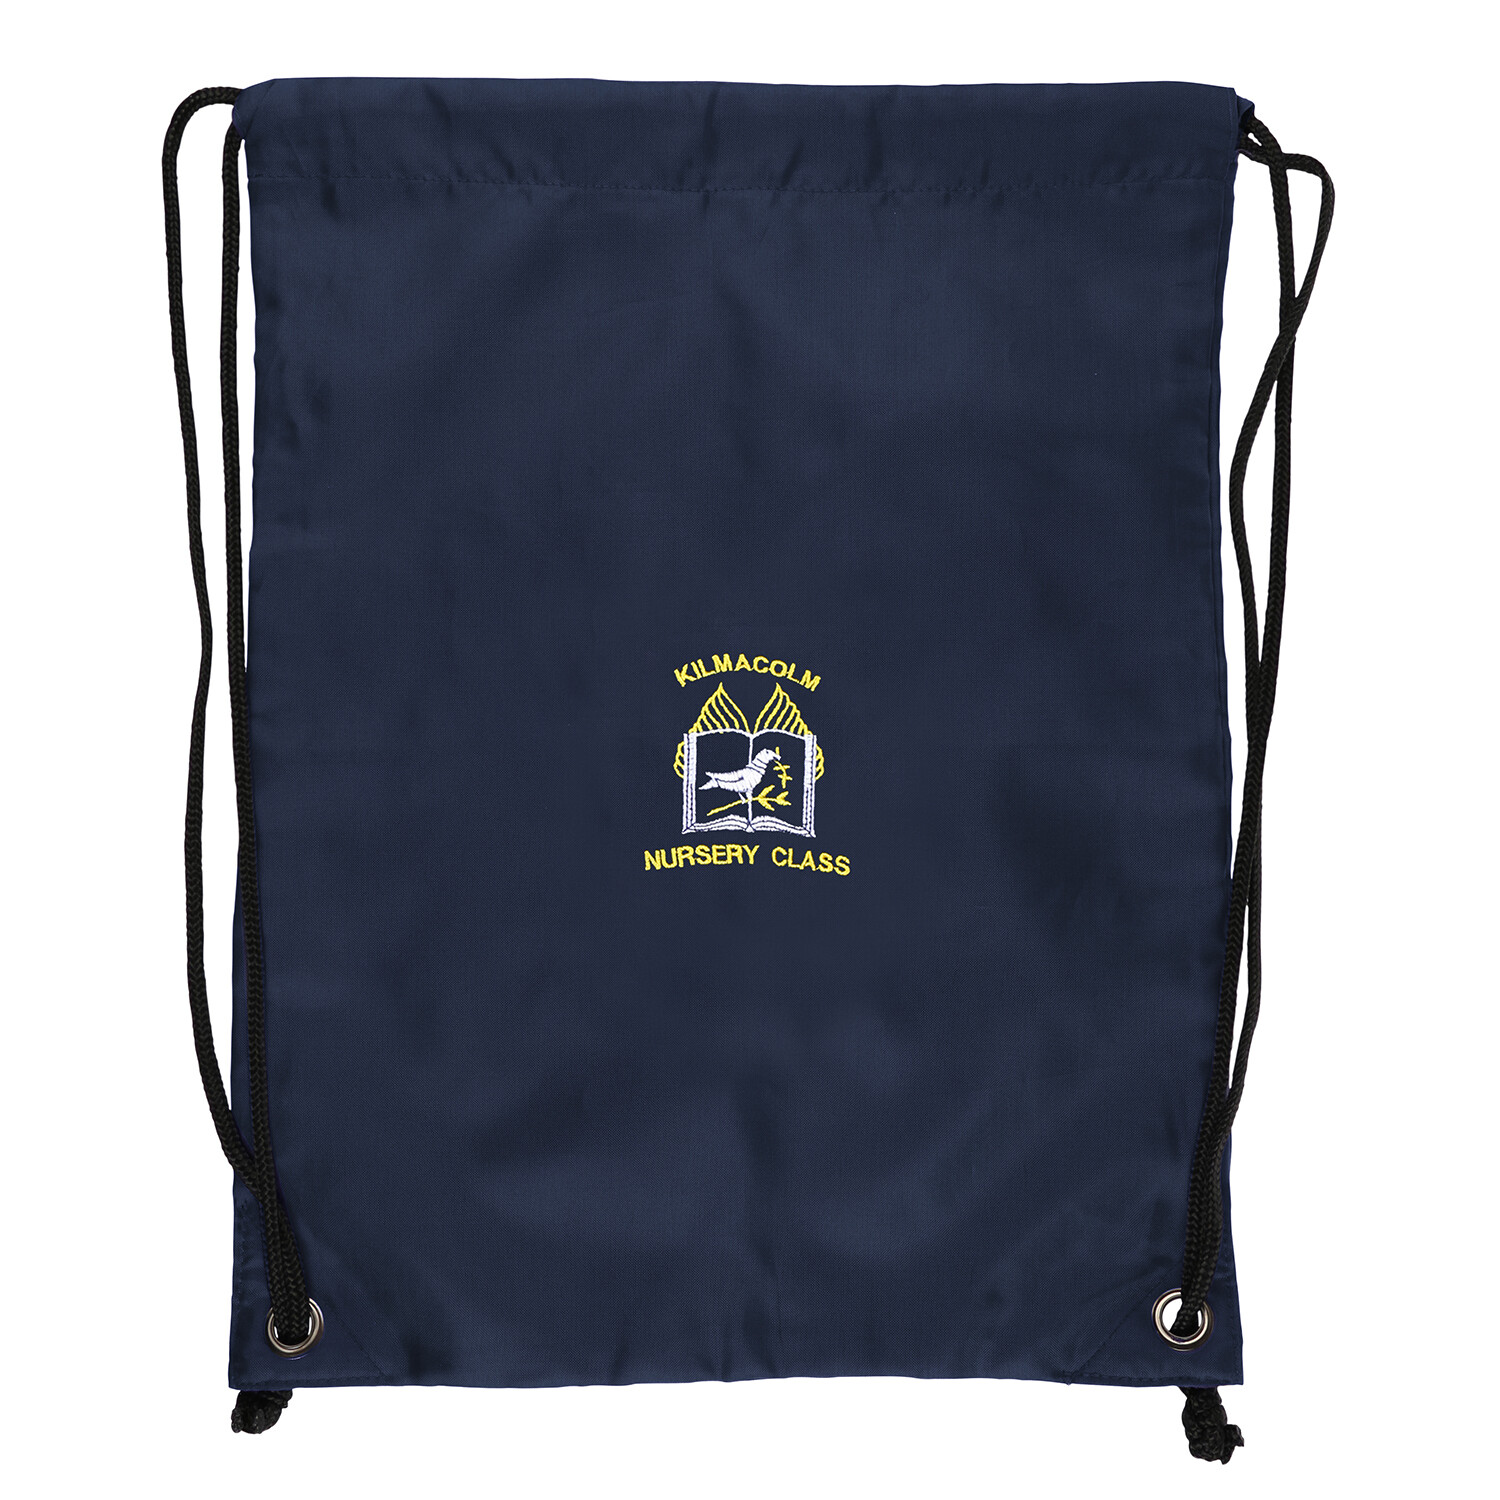 Kilmacolm Primary Nursery Class Gym Bag